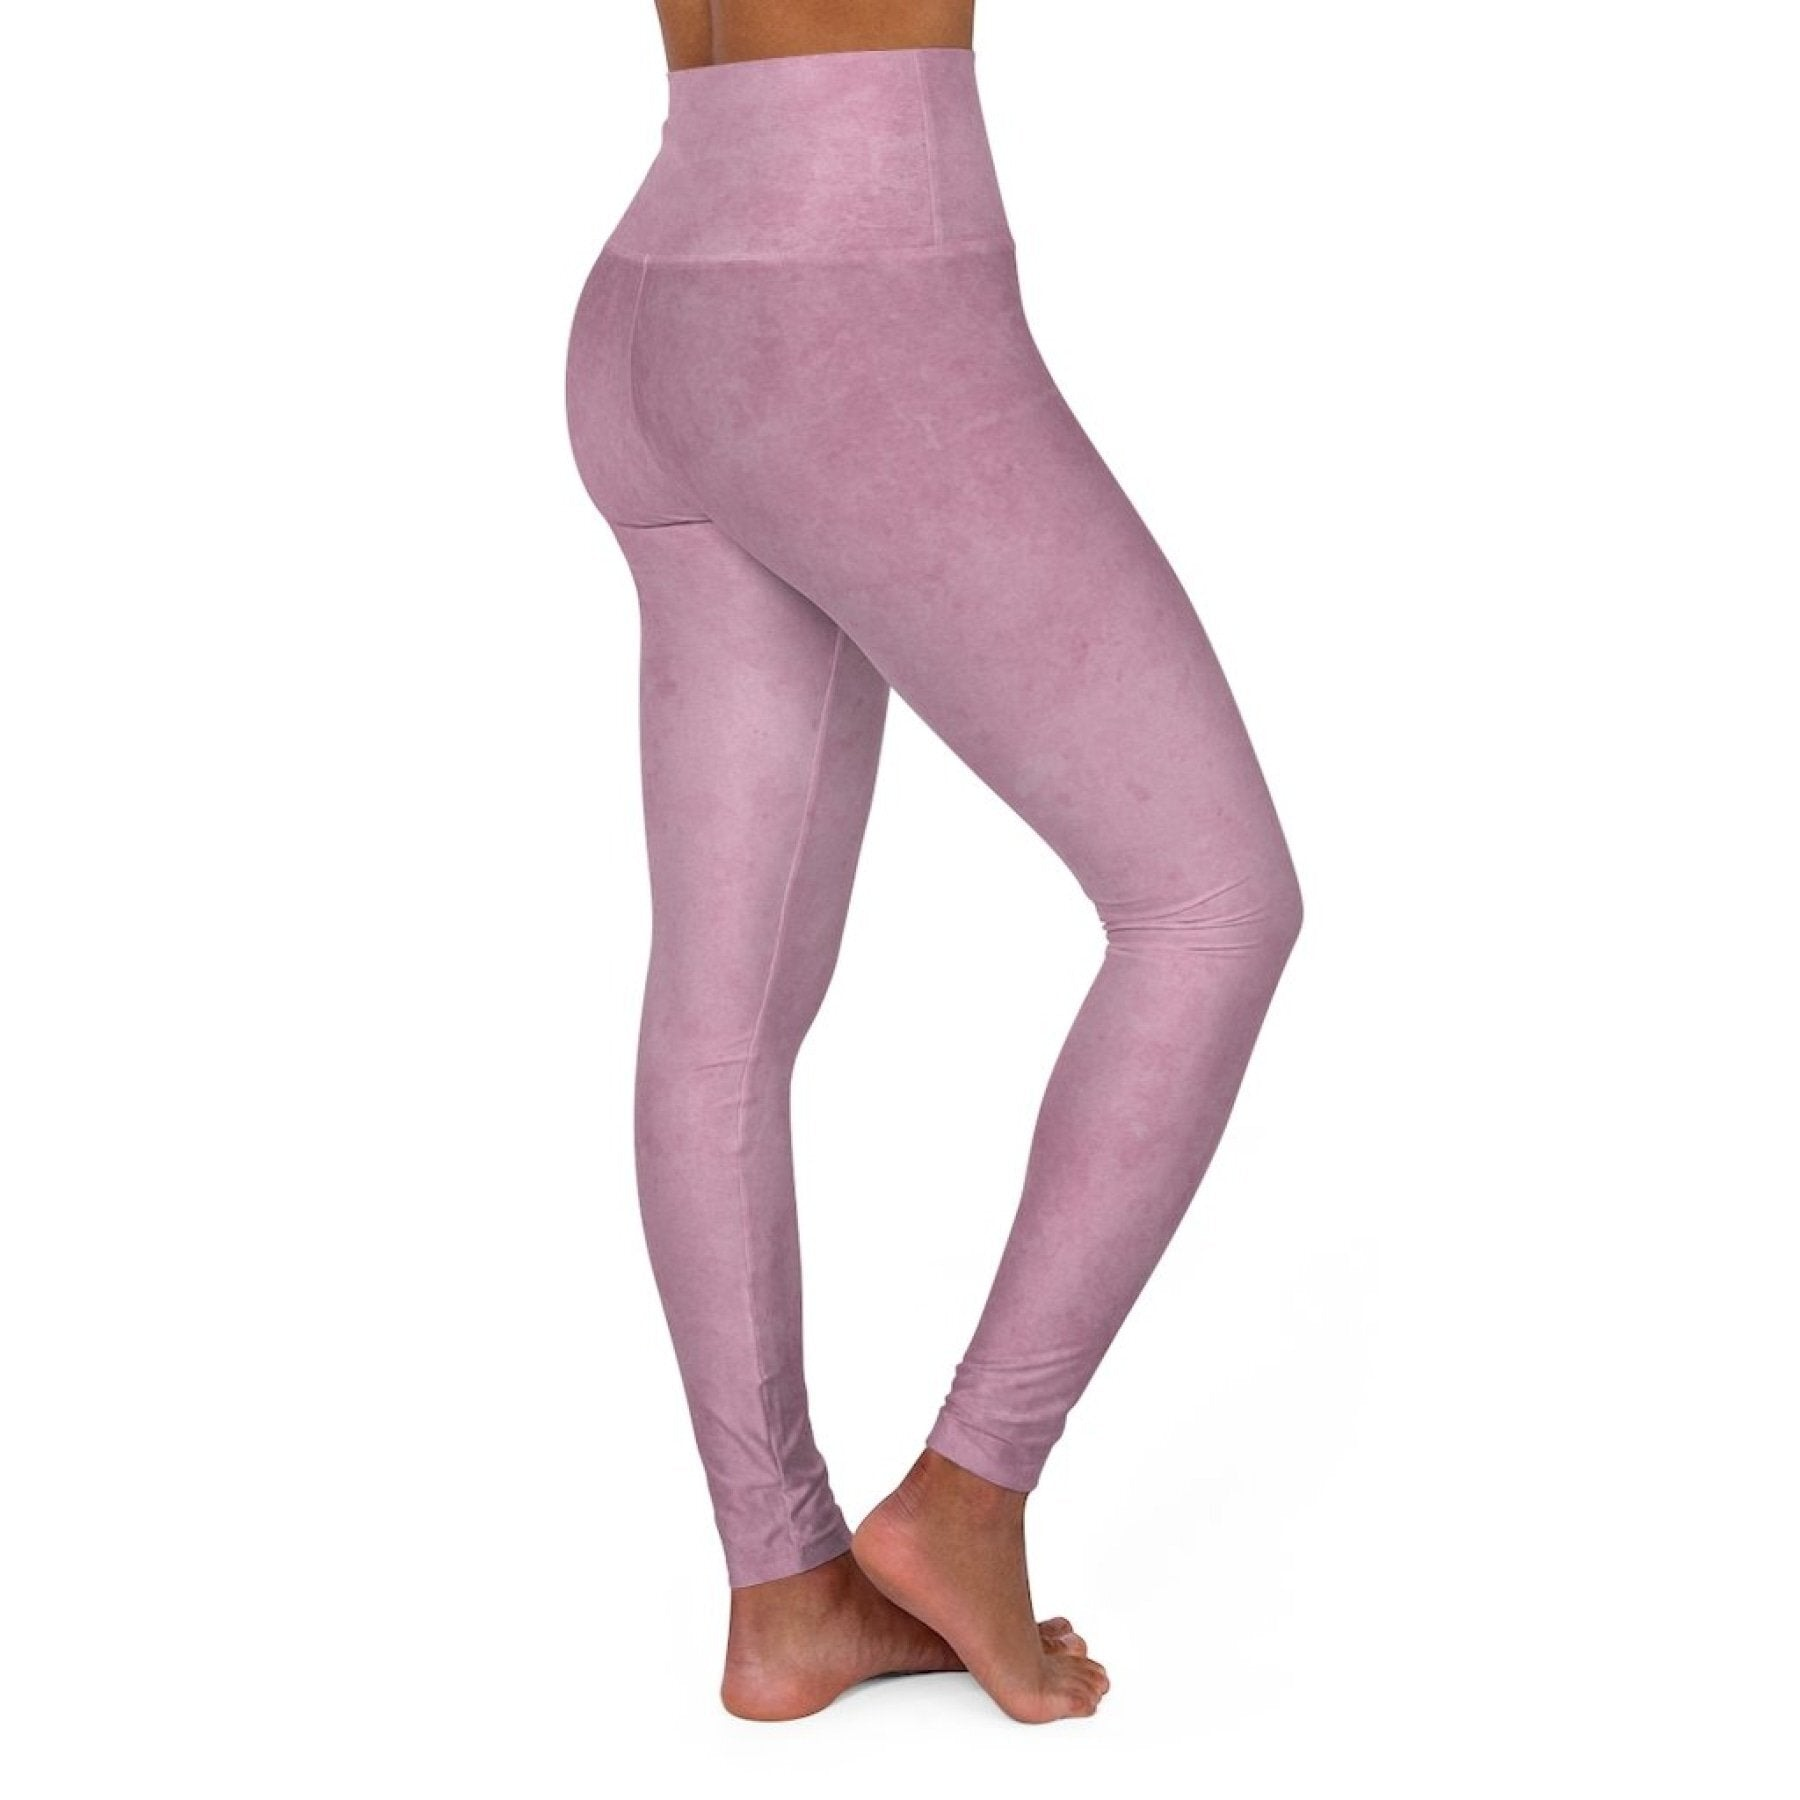 High Waisted Yoga Leggings, Heather Pink Pants